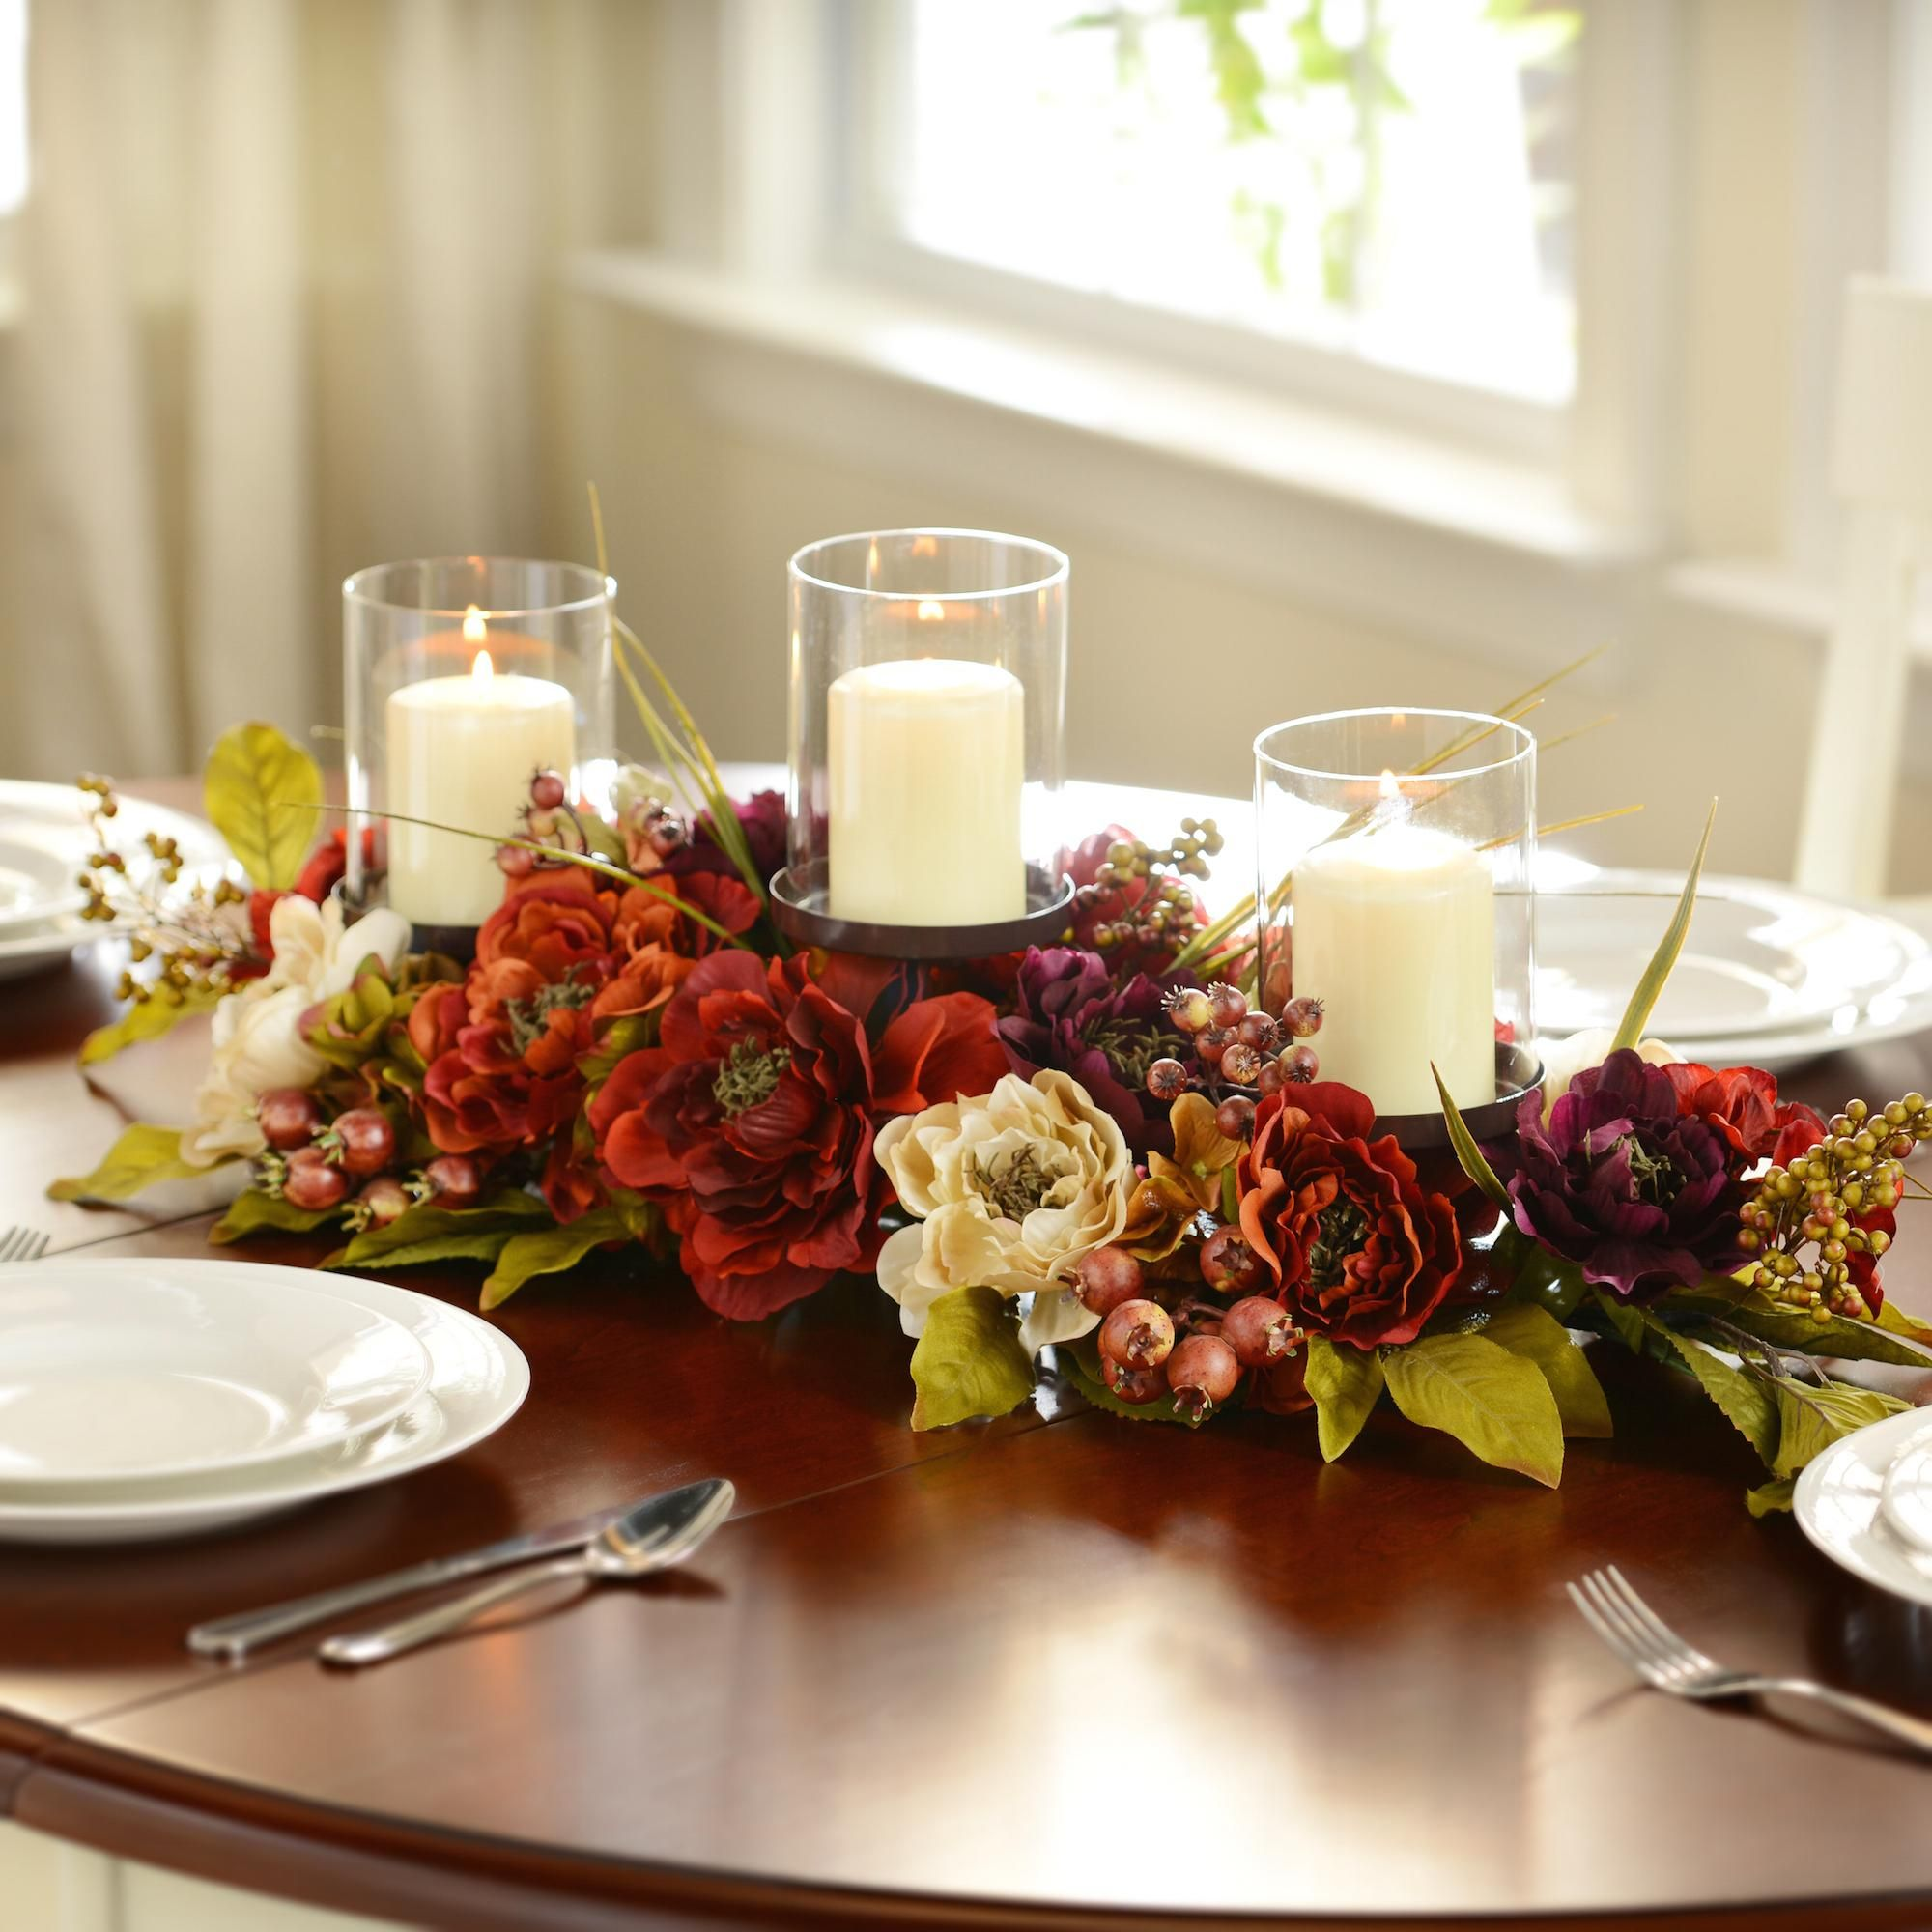 Help Your Friends And Family Complete Their Table Decor With A Peony Candle Cente Floral Candle Centerpieces Dining Room Table Centerpieces Candle Centerpieces